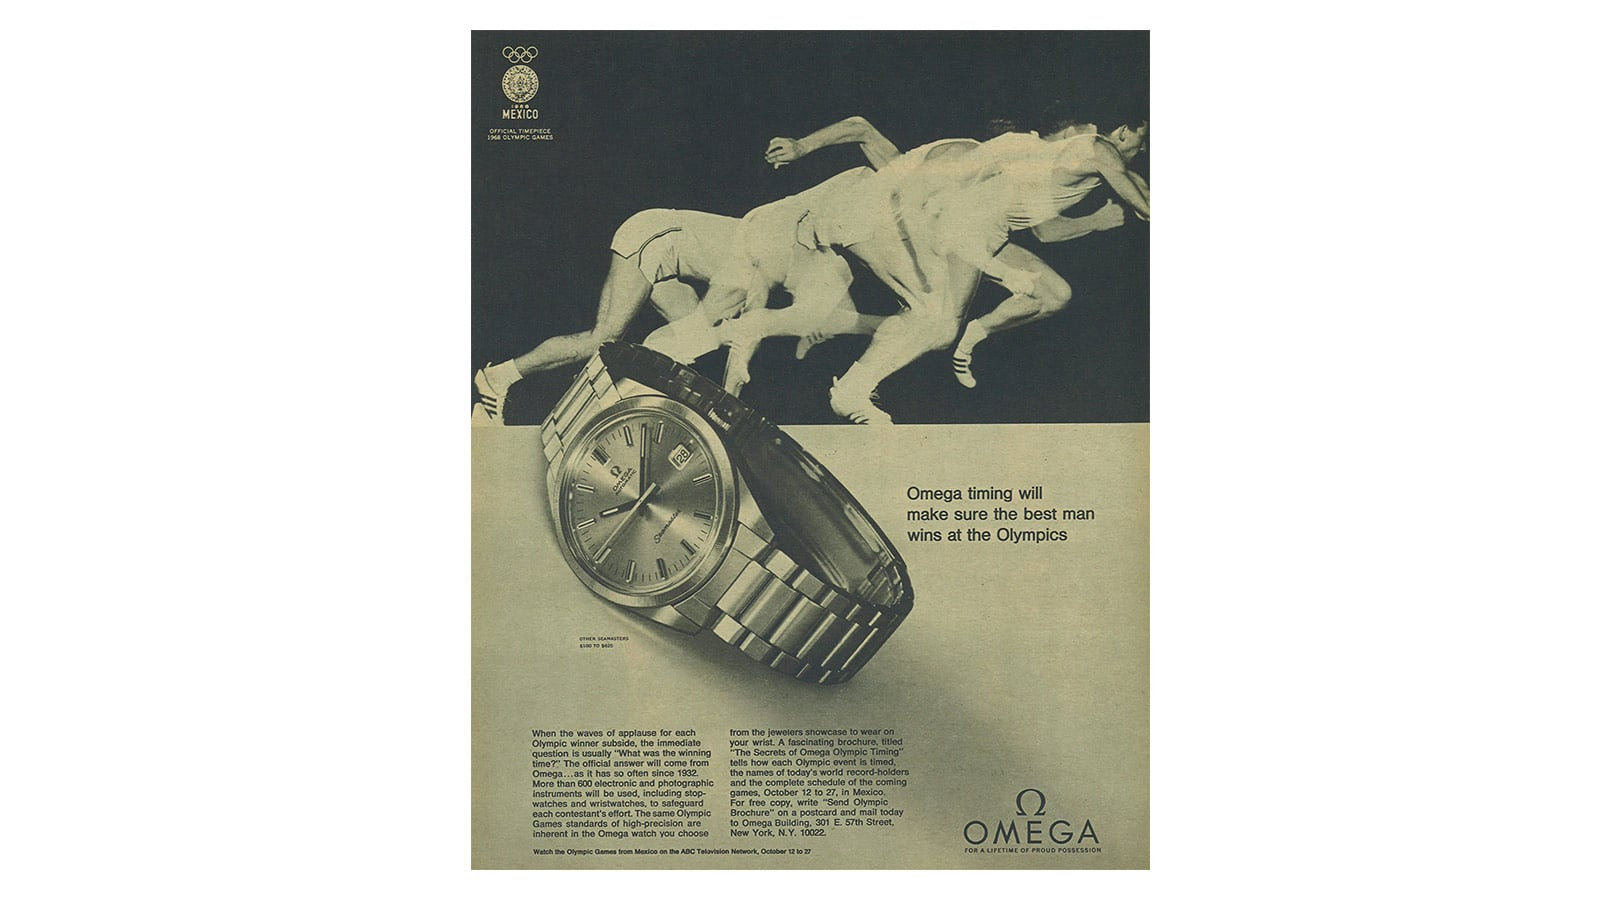 Olympic Games : a race proudly won by OMEGA - Slide 6 - 412